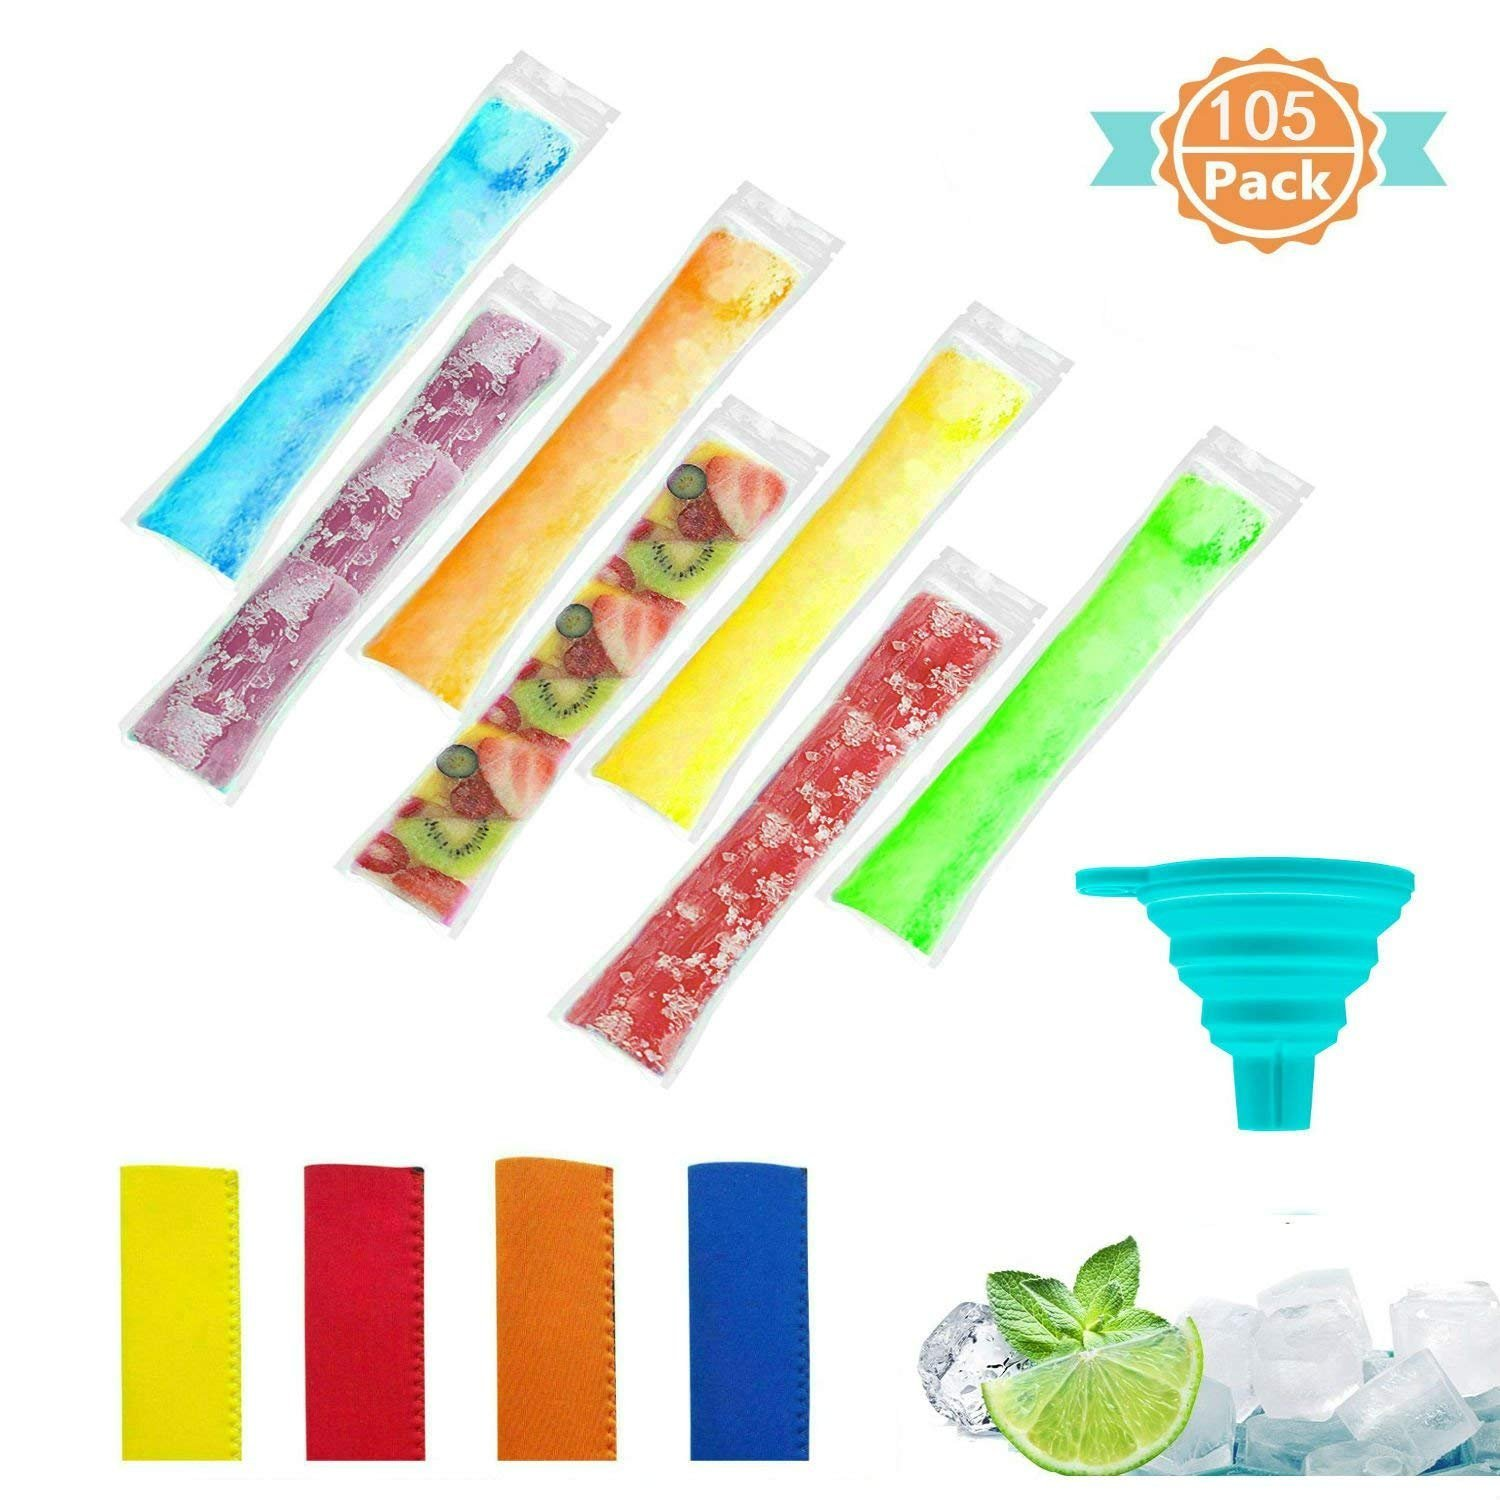 100pcs Ice Popsicle Mold Bags, Disposable 11 x 2 Inch BPA Free Ice Pop Pouchs, with 4 Popsicle Holders and Free Funnel, for Yogurt, Ice Candy, or Freeze Pops Devbor